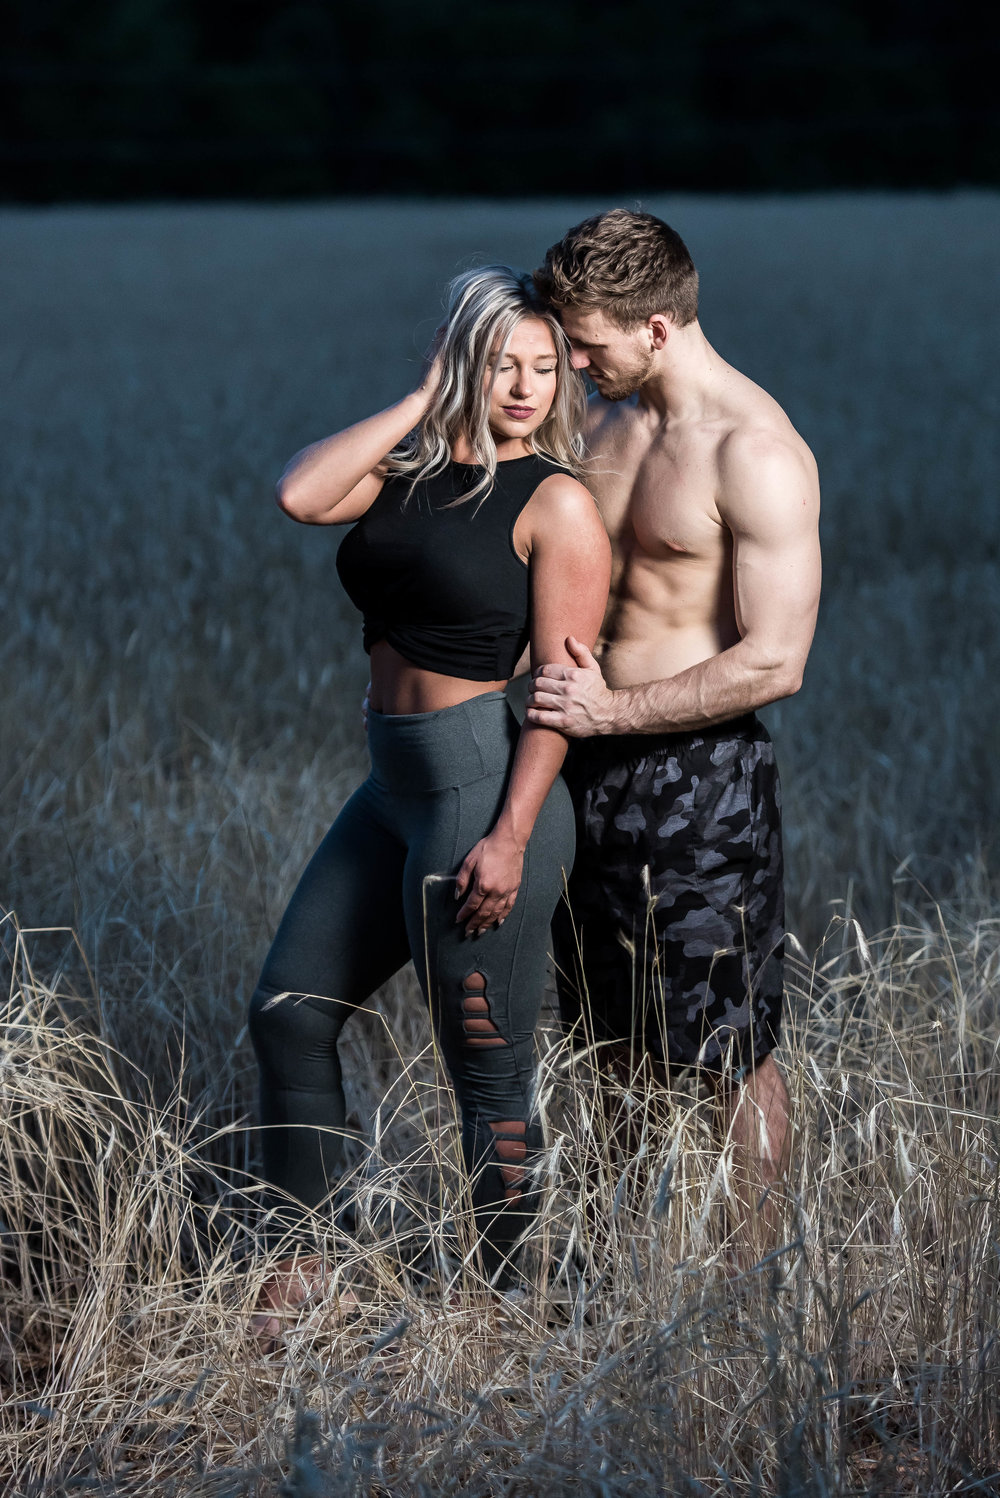 Couple Session - Fitness Couples - Tall Grass Field - Engagement Portrait Ideas - Engagement Session Ideas - Couple Session Ideas - Spring Picture Ideas-23.jpg